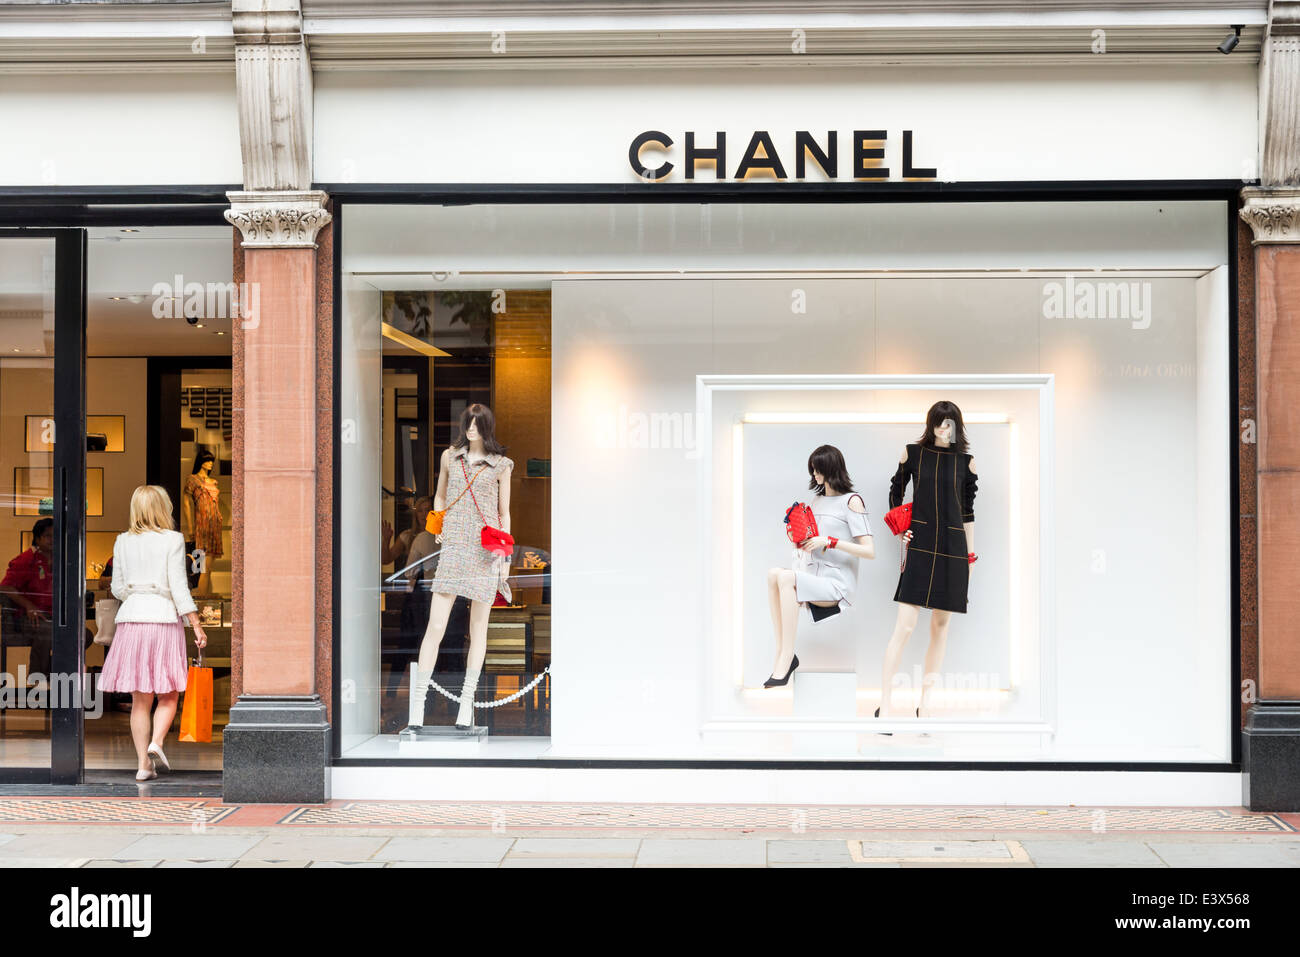 Holiday dresses for women women dresses - Chanel Luxury Designer Clothes Shop On Sloane Street London Stock